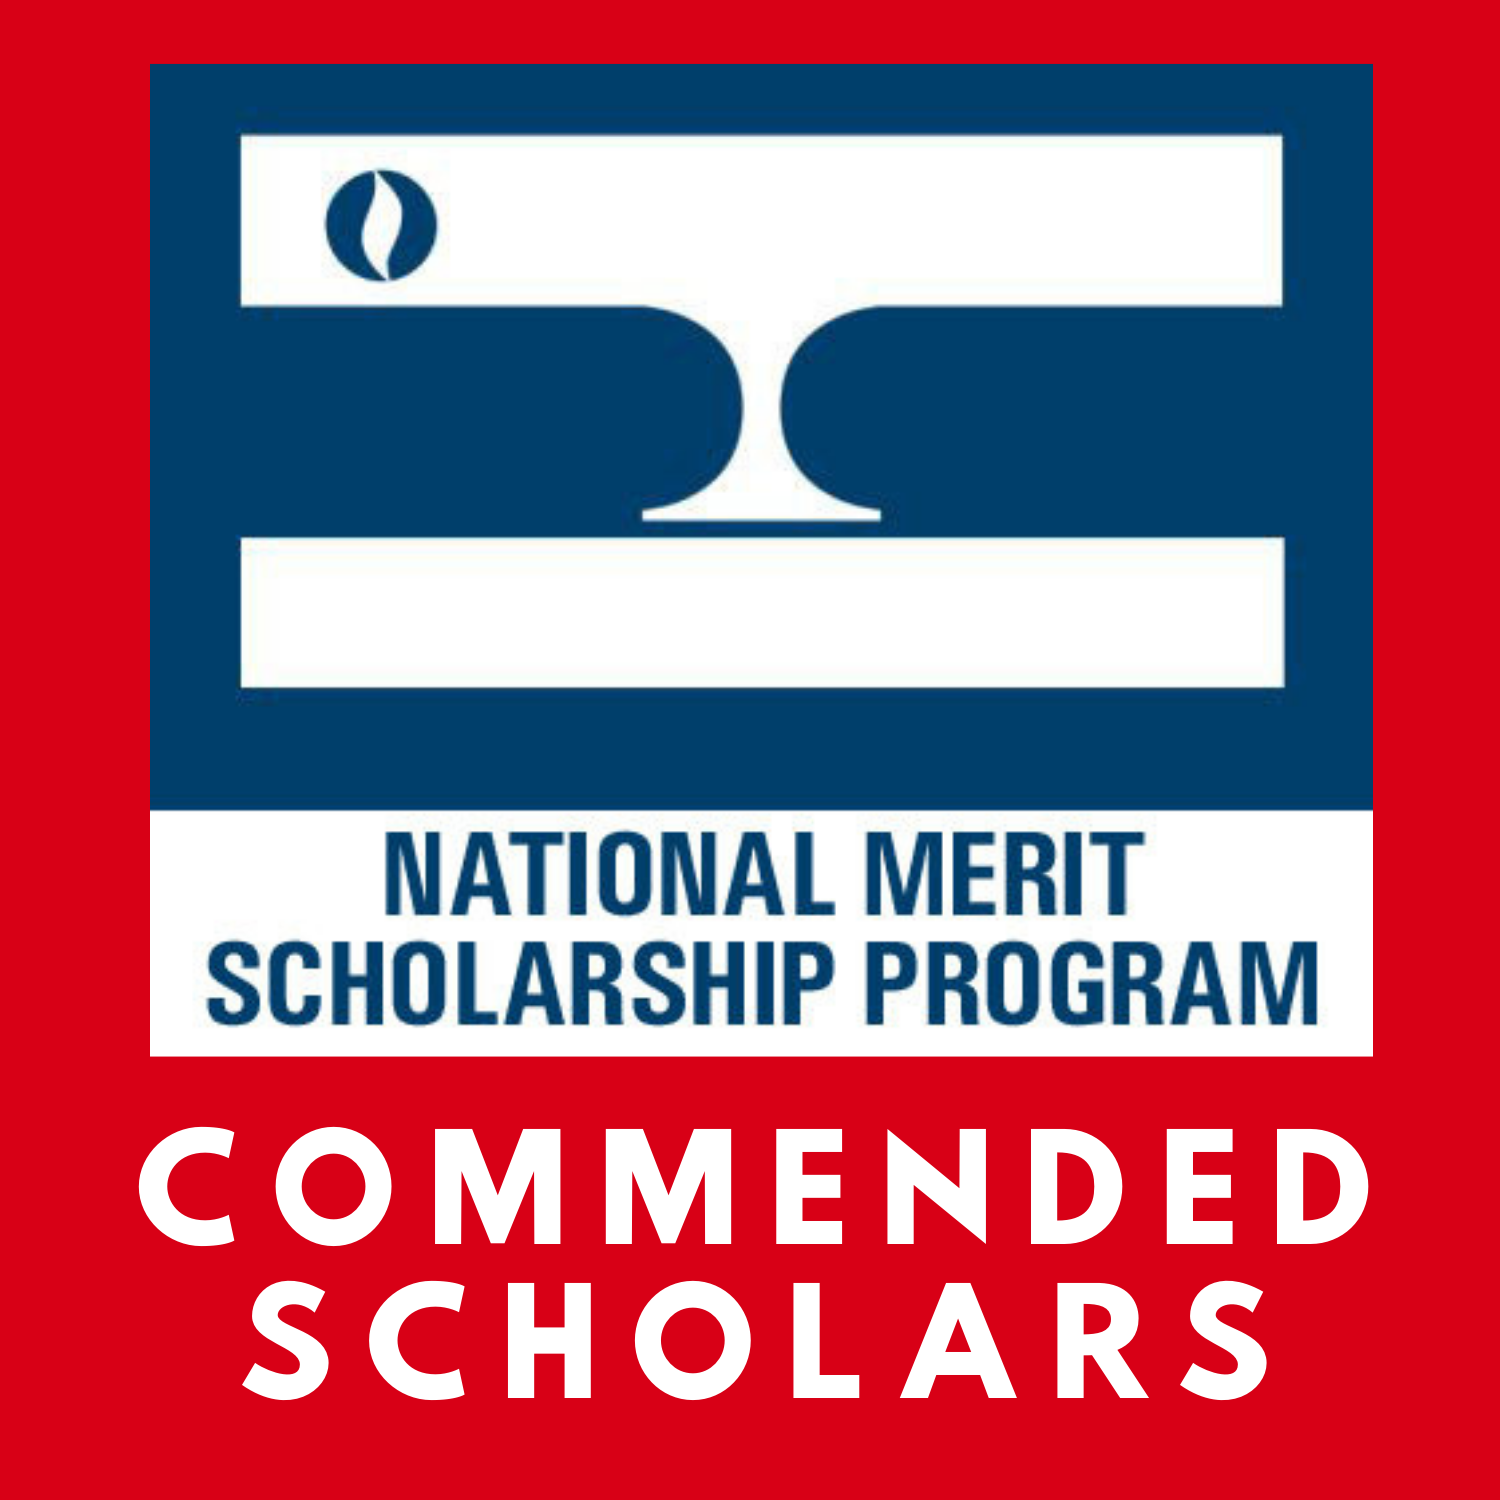 77 Students Named Commended Scholars